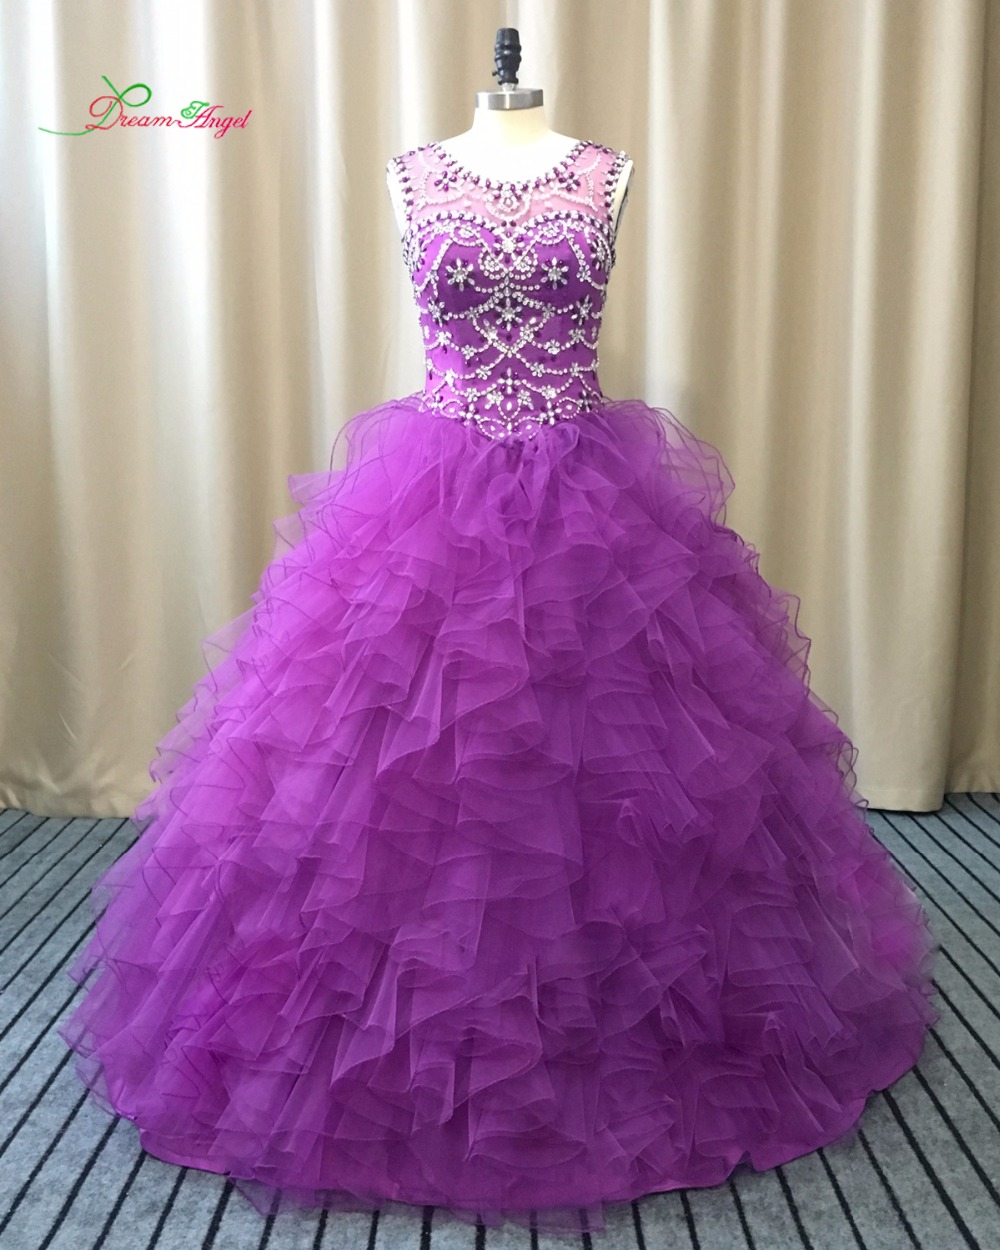 Dream Angel Scoop Neck Purple Ball Gown Ruffles Quinceanera Dress 2017 Beaded Sequined Debutante Dress For 15 Years Plus Size